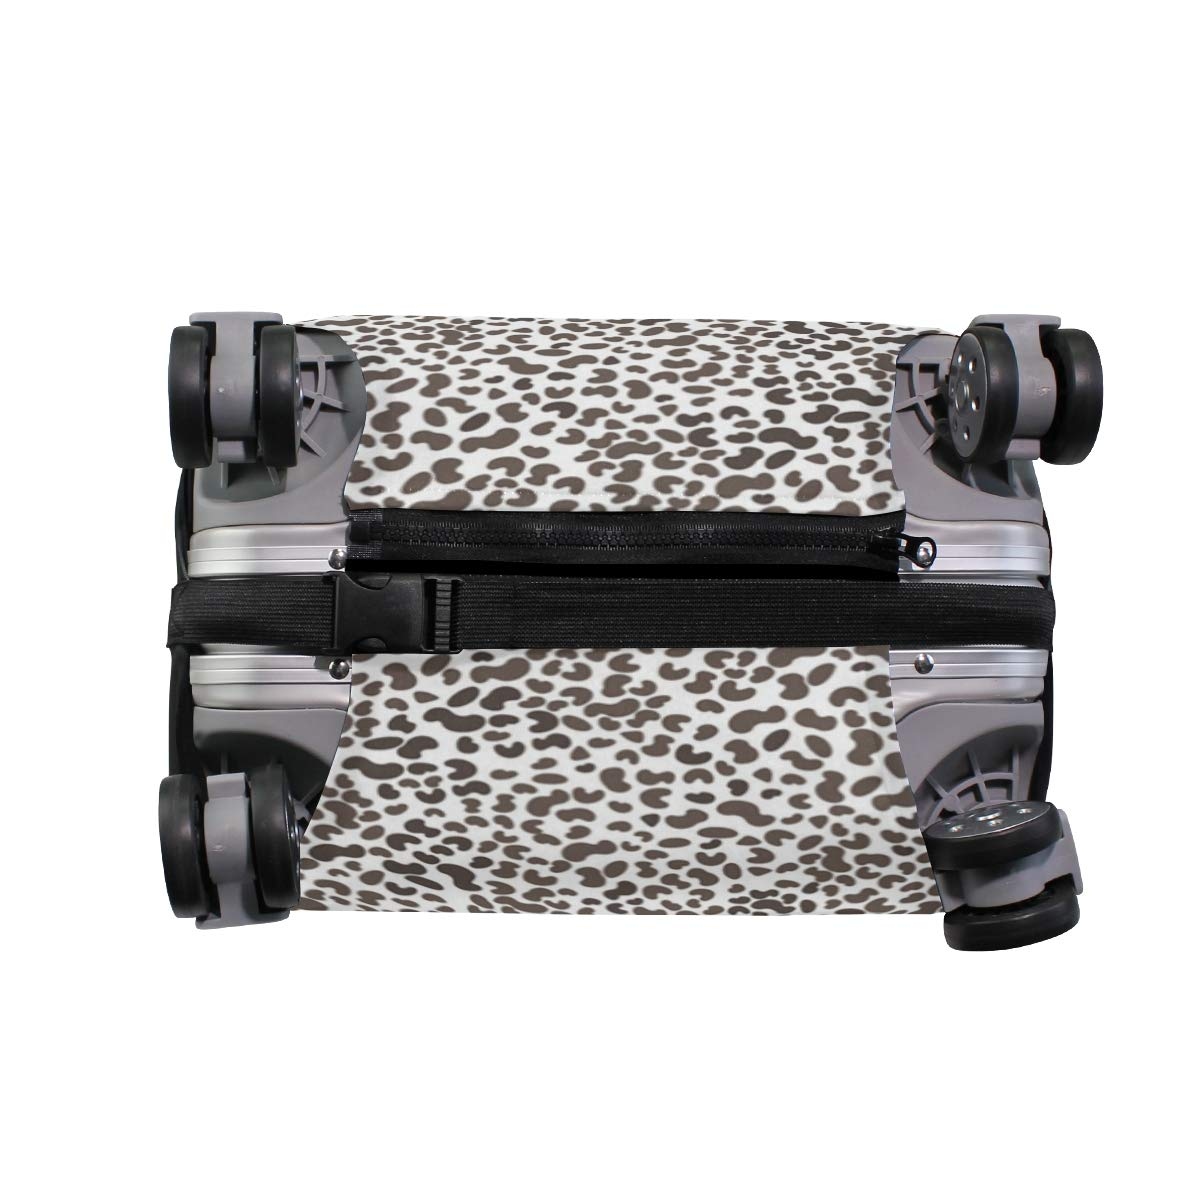 Animal Skin Leopard Print Traveler Lightweight Rotating Luggage Protector Case Can Carry With You Can Expand Travel Bag Trolley Rolling Luggage Protector Case